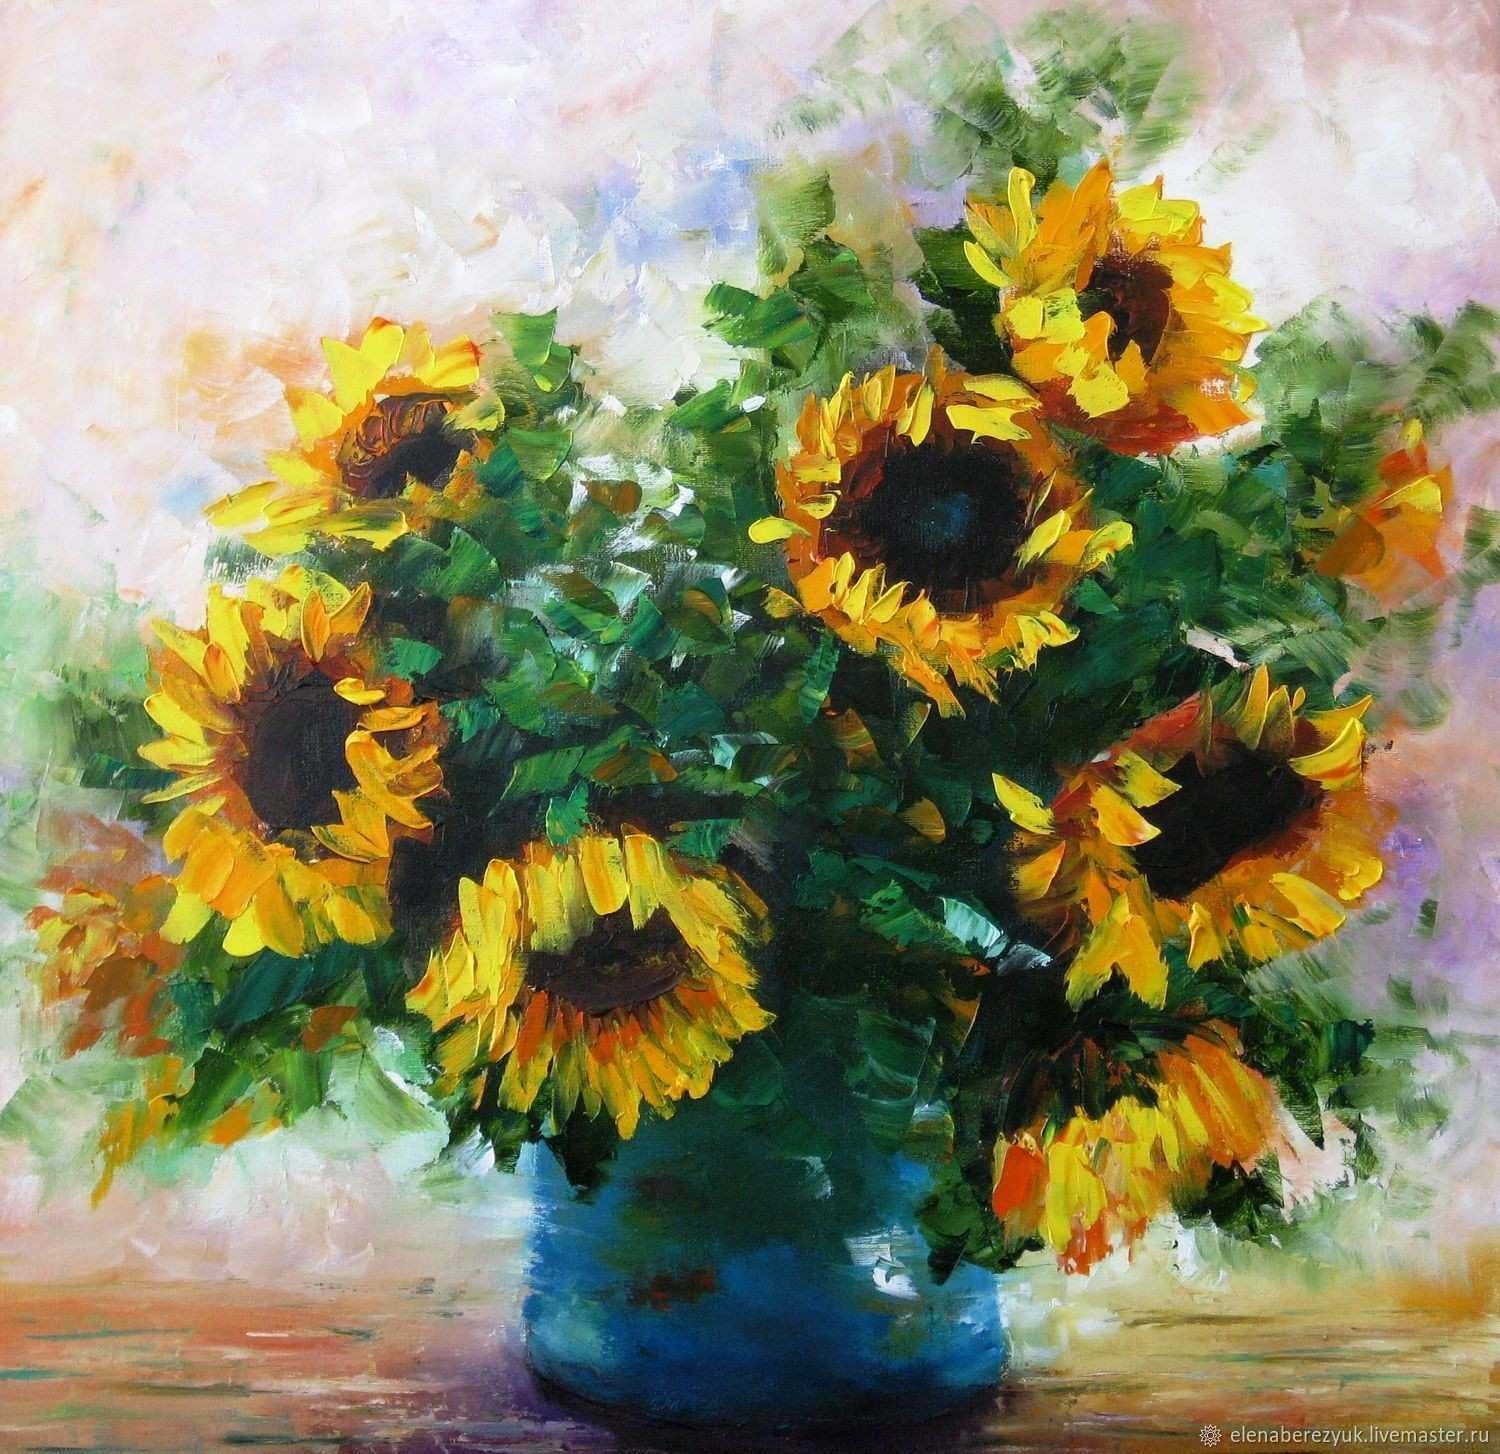 Oil painting on stretched canvas Sunflowers still life with flowers